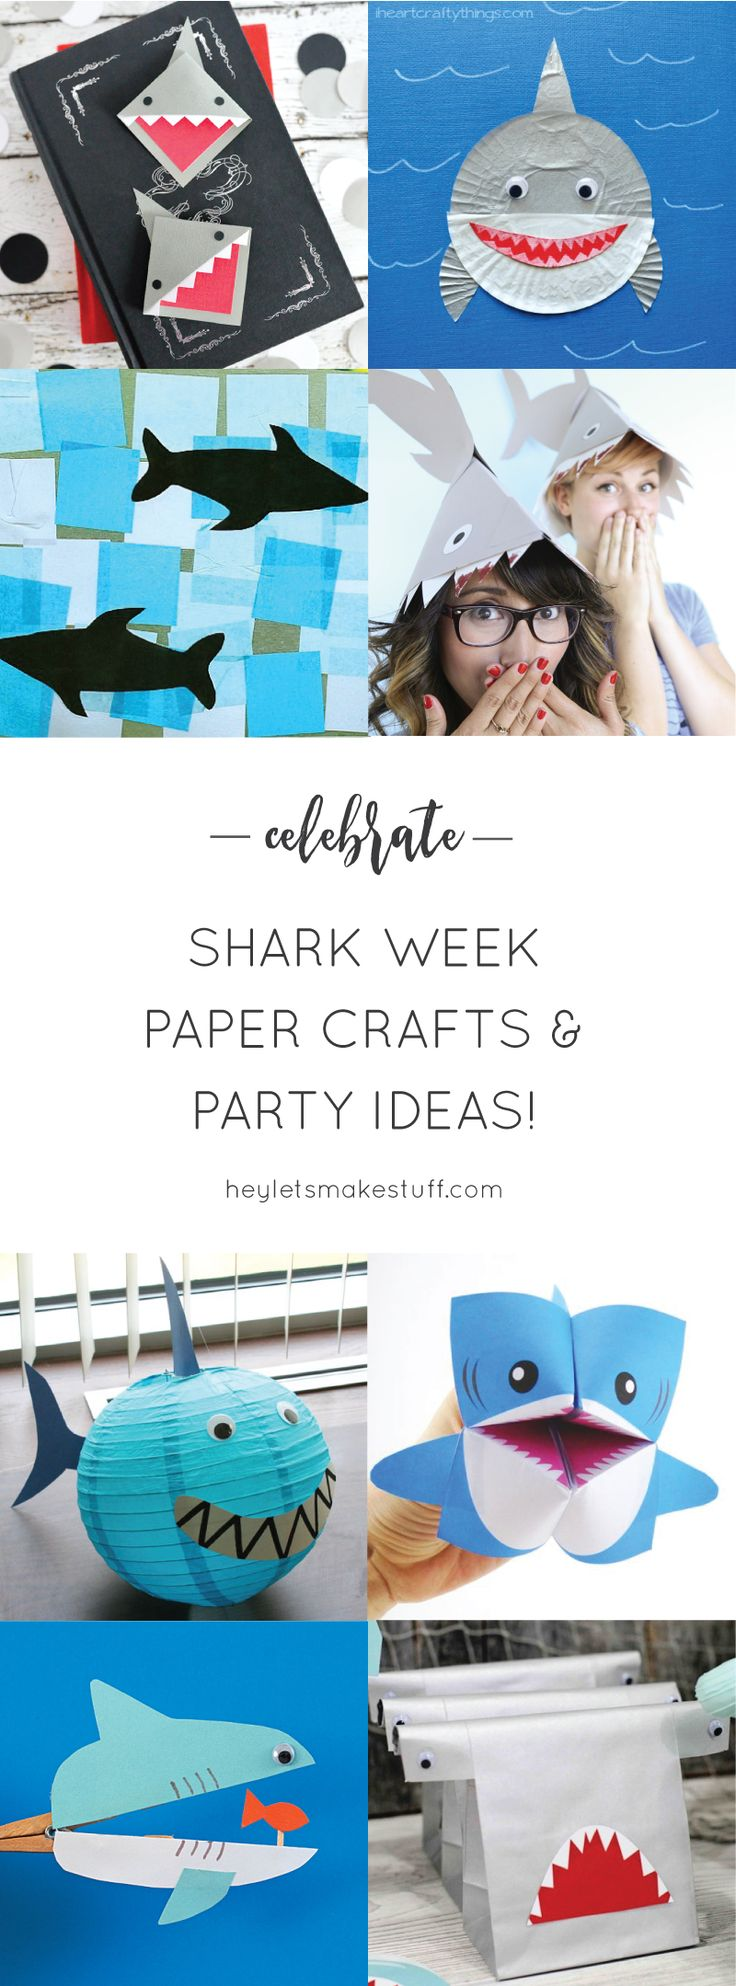 best ideas about shark craft ocean crafts kid shark week paper crafts party ideas